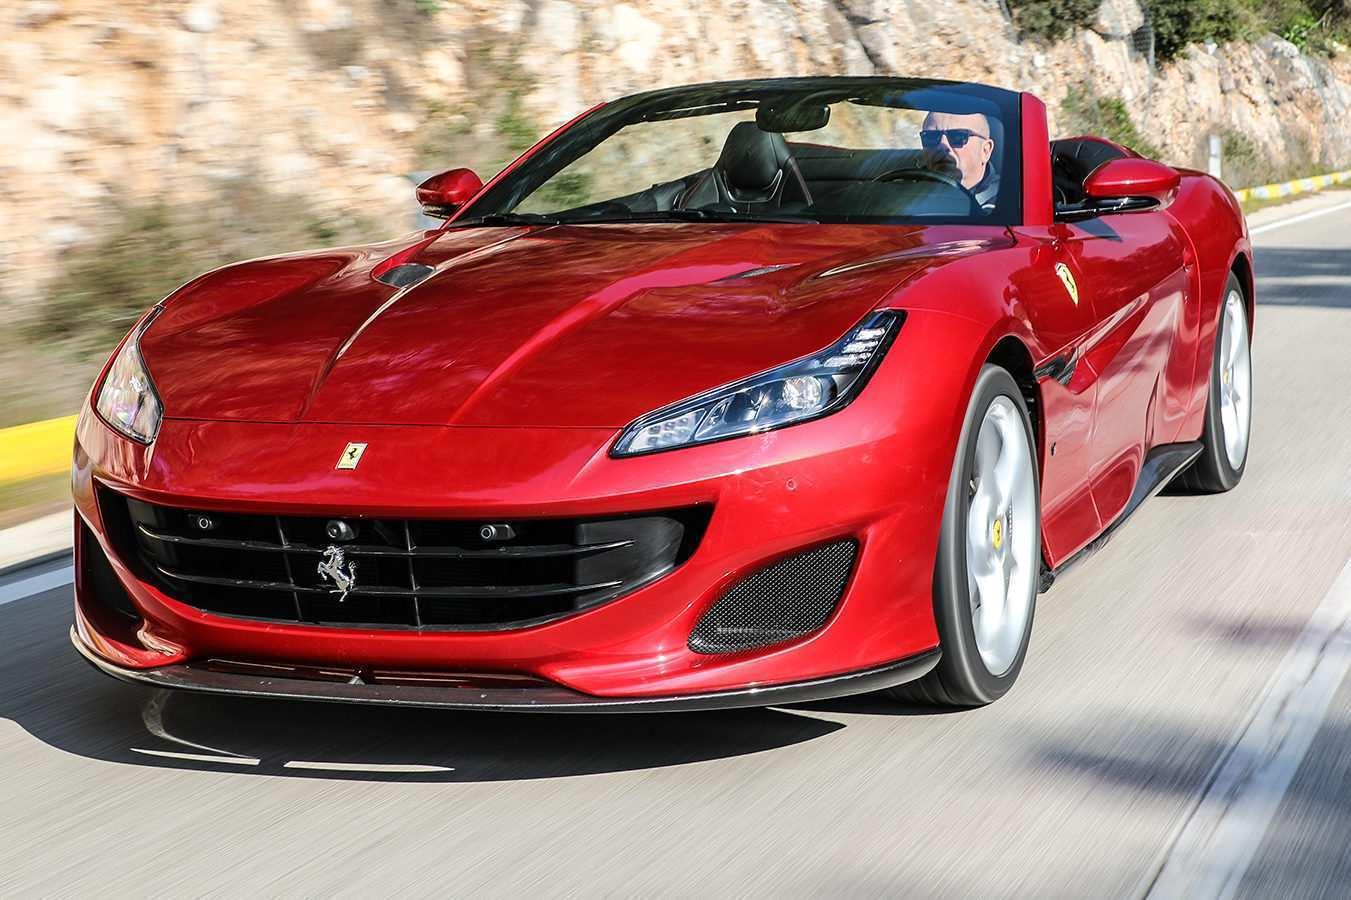 13 Great 2019 Ferrari Portofino Spesification for 2019 Ferrari Portofino